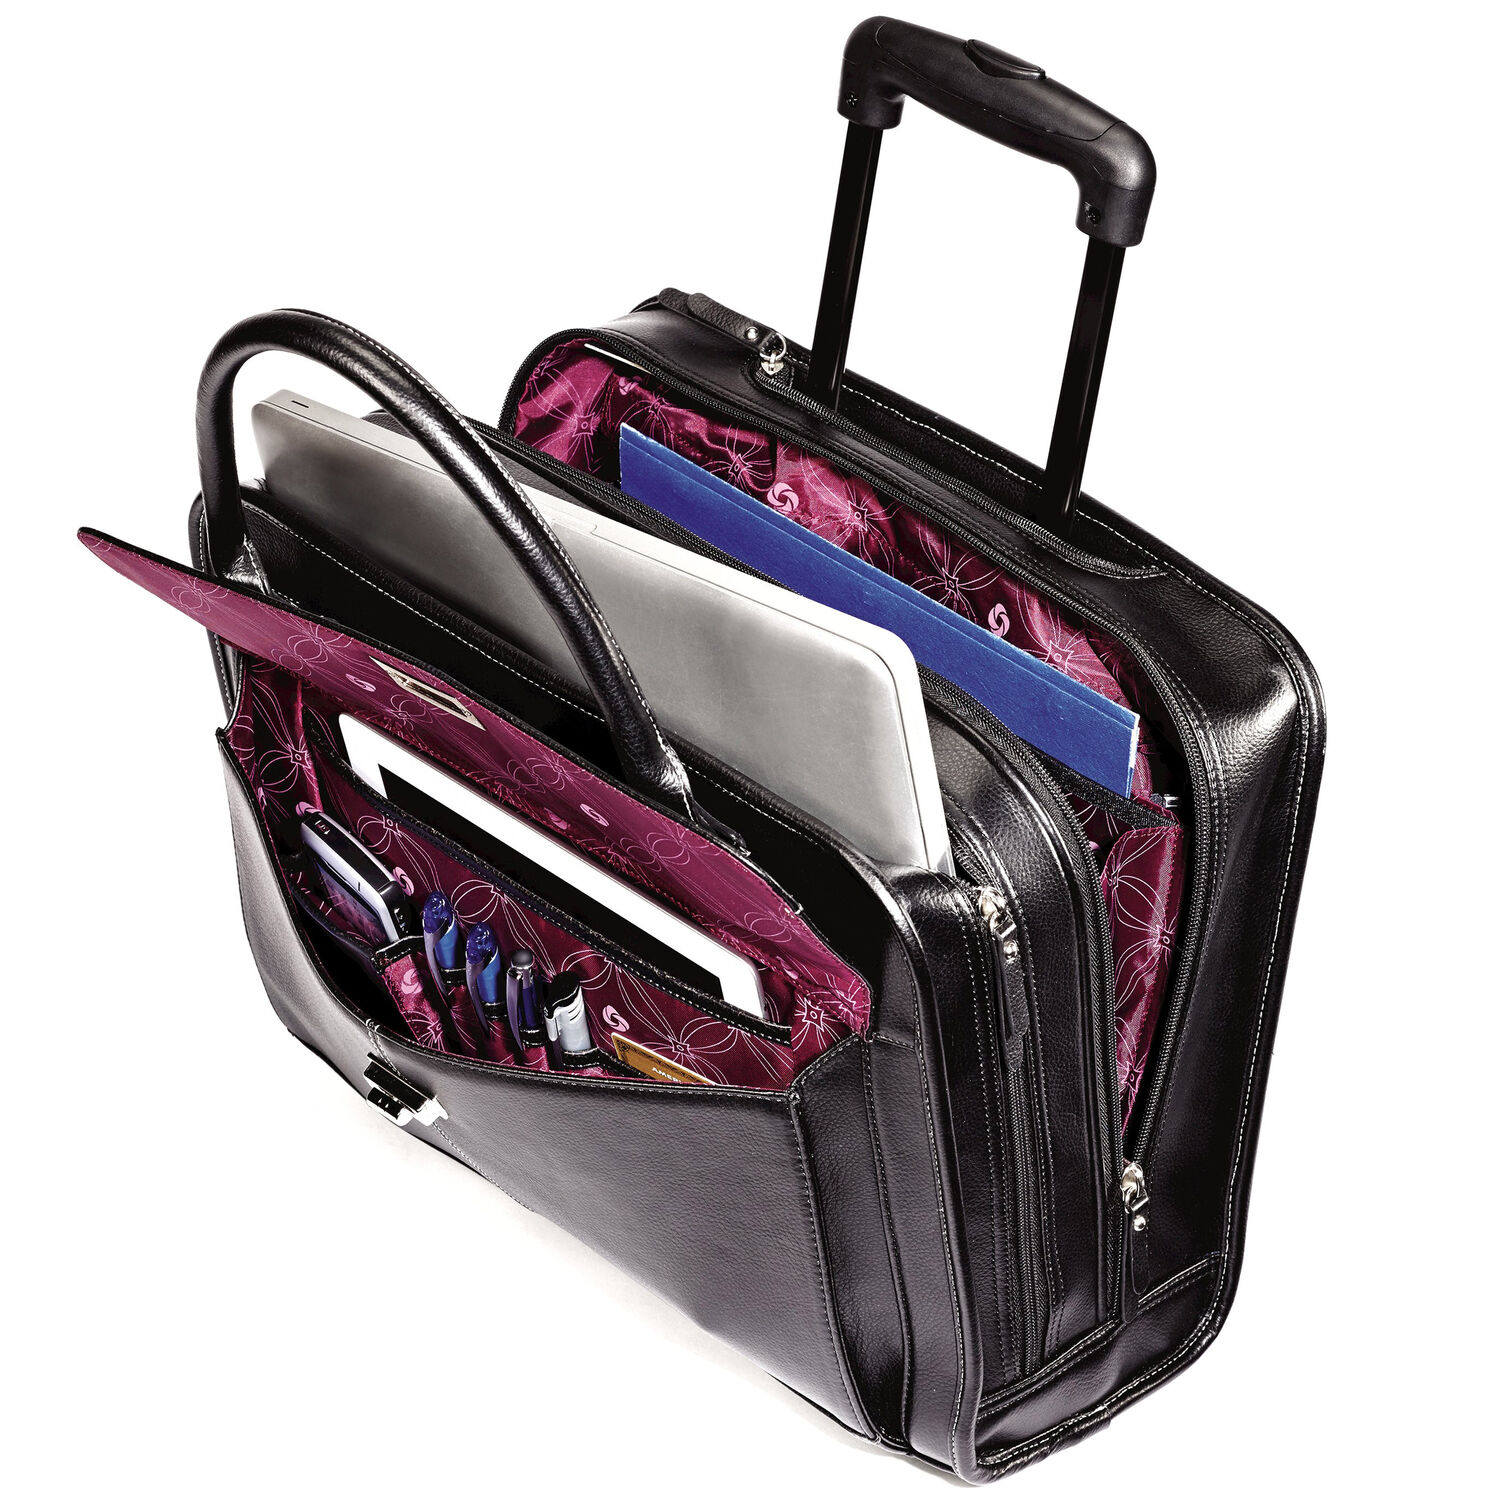 Samsonite Business Women  39 s Mobile Office in the color ... 70ee9c931495b